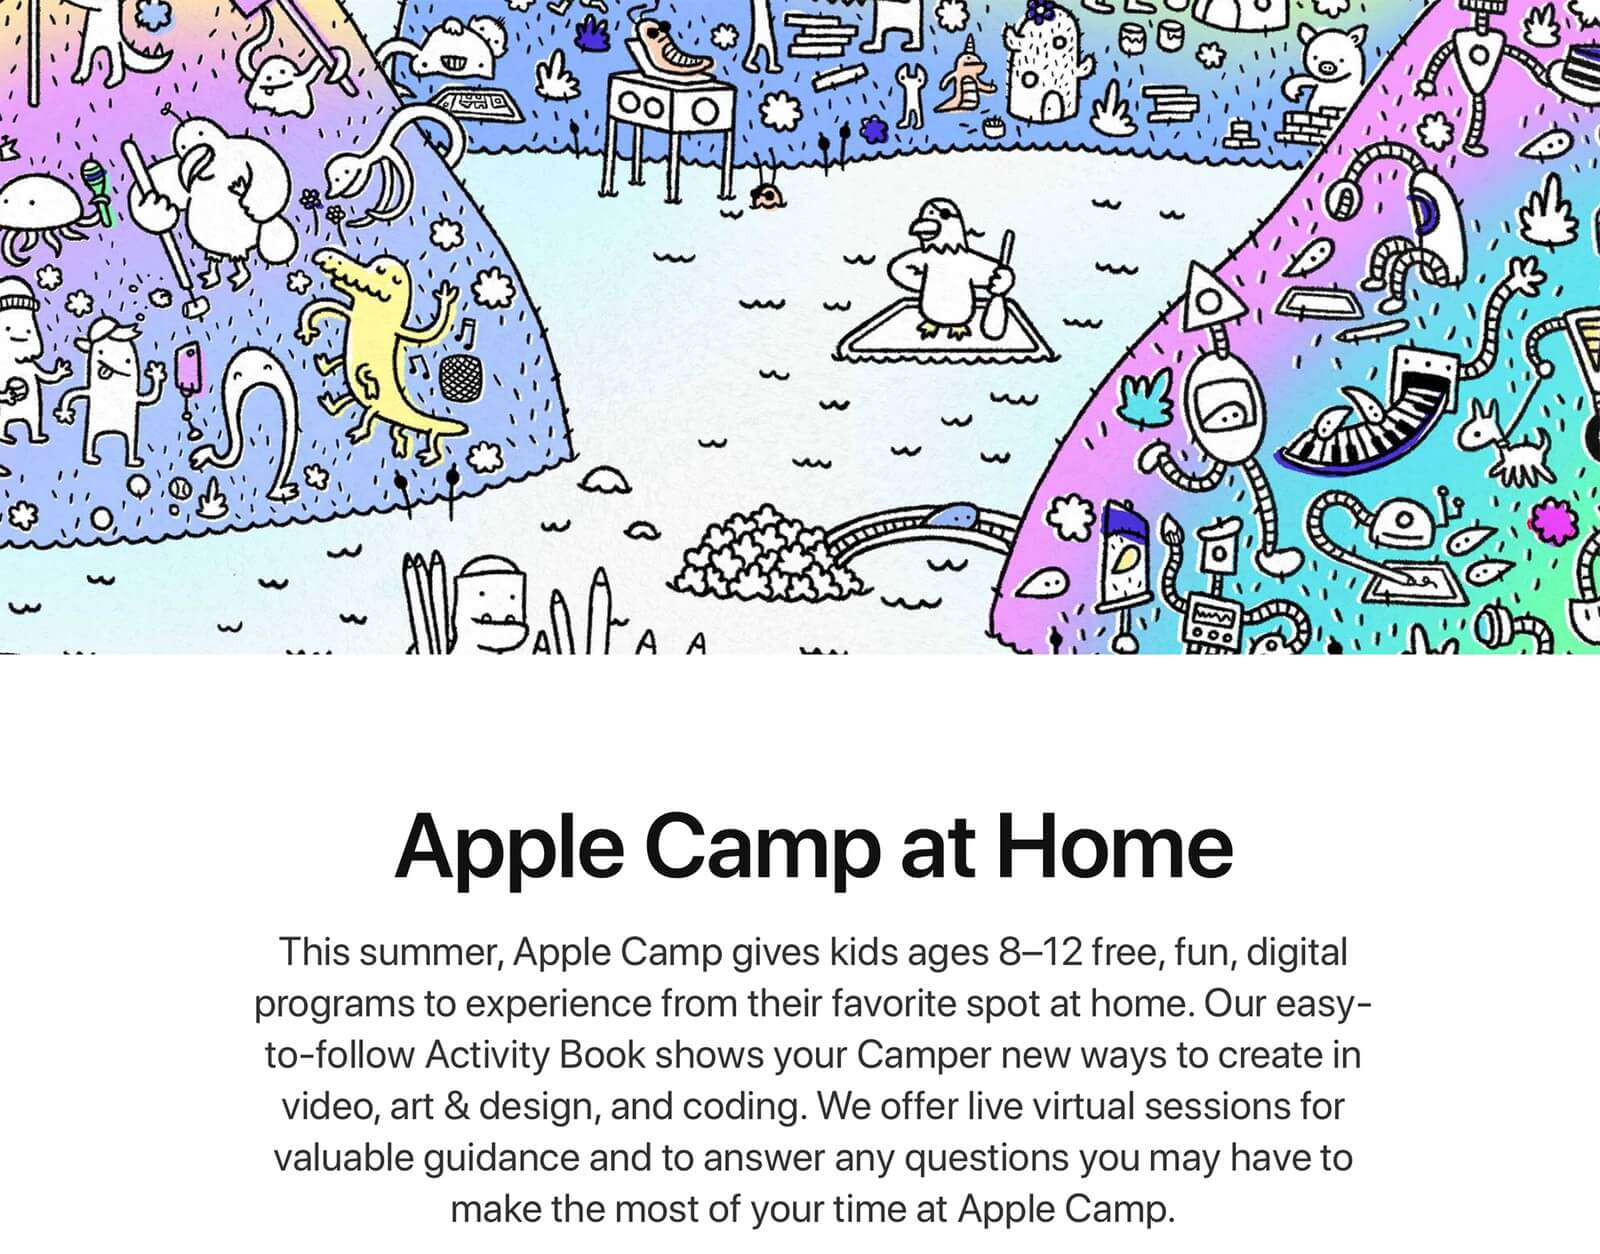 Apple Camp